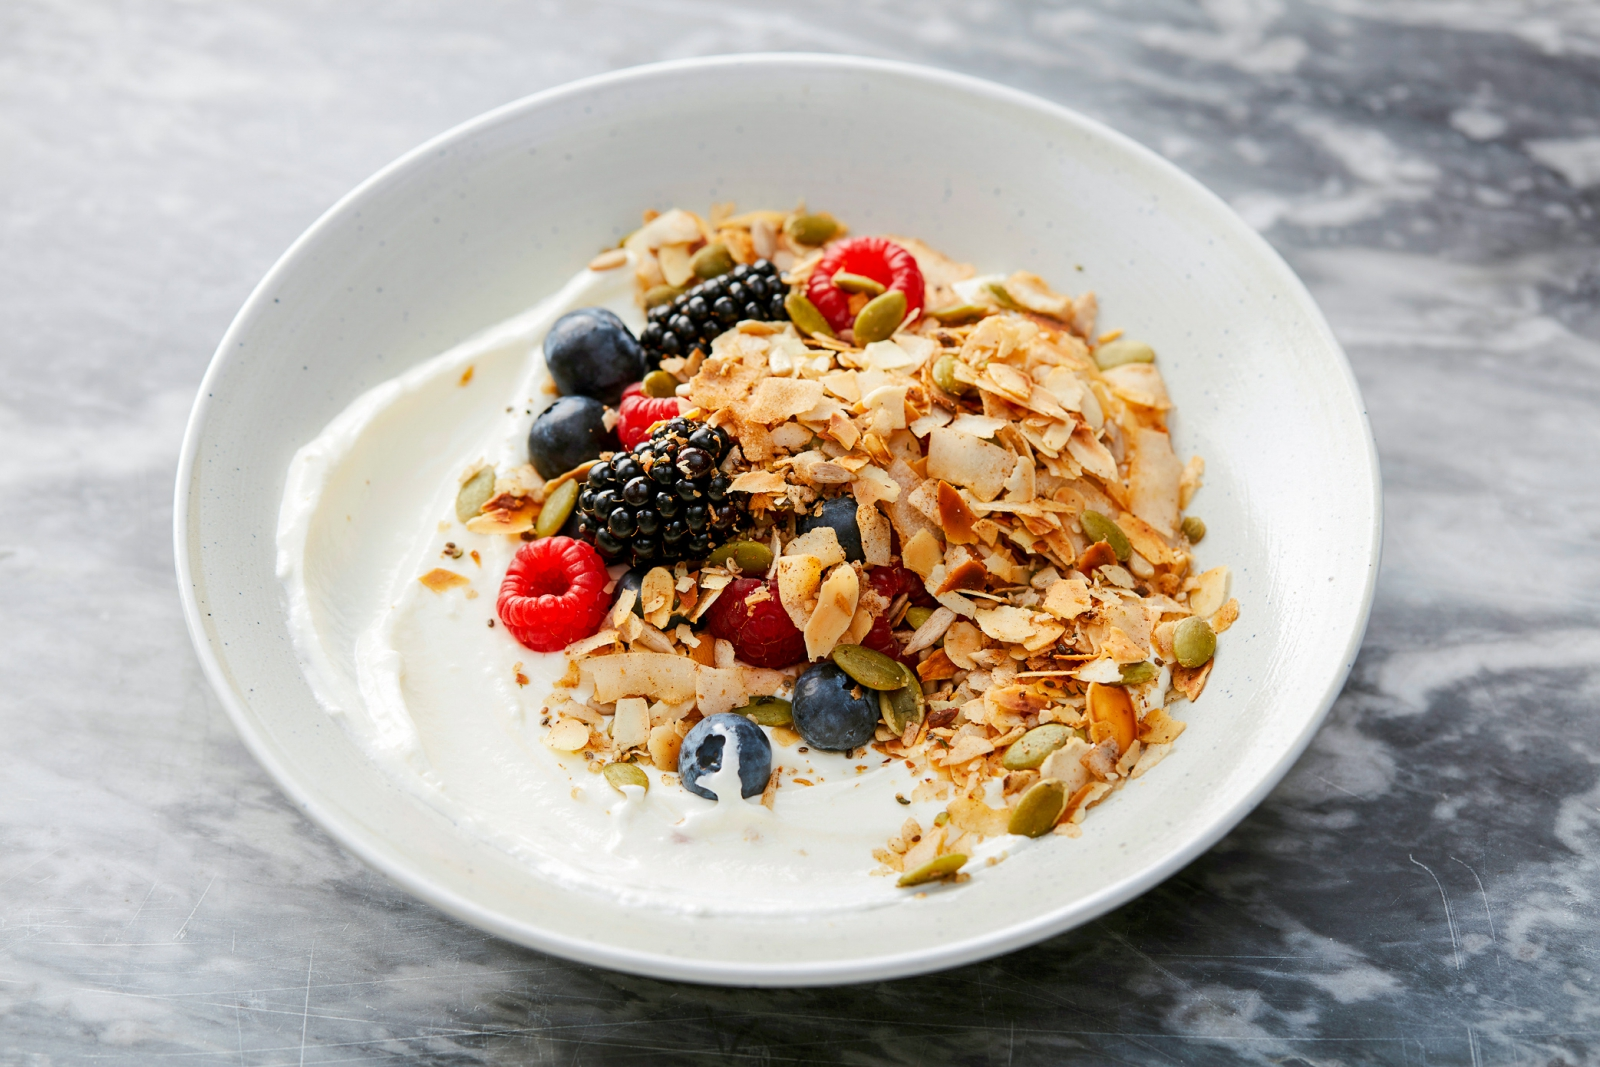 Keto Granola Bowl met Homemade Kokosyoghurt - ALL GOOD Kaneel Keto Granola